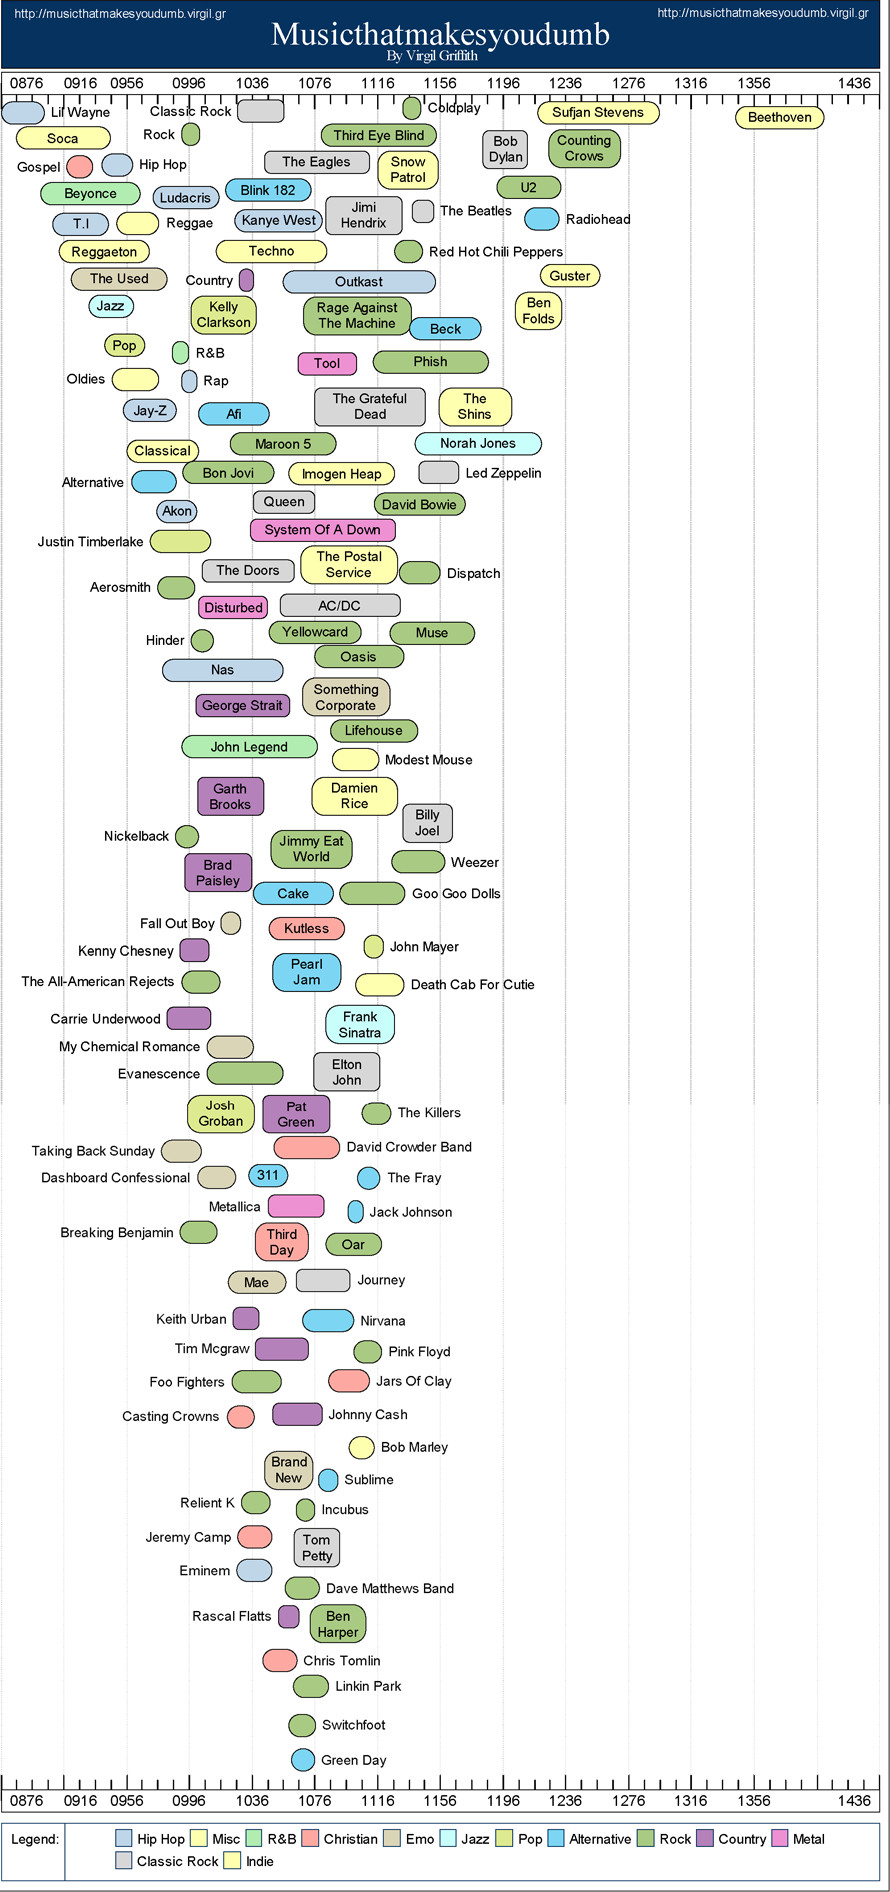 SAT scores by music preferences